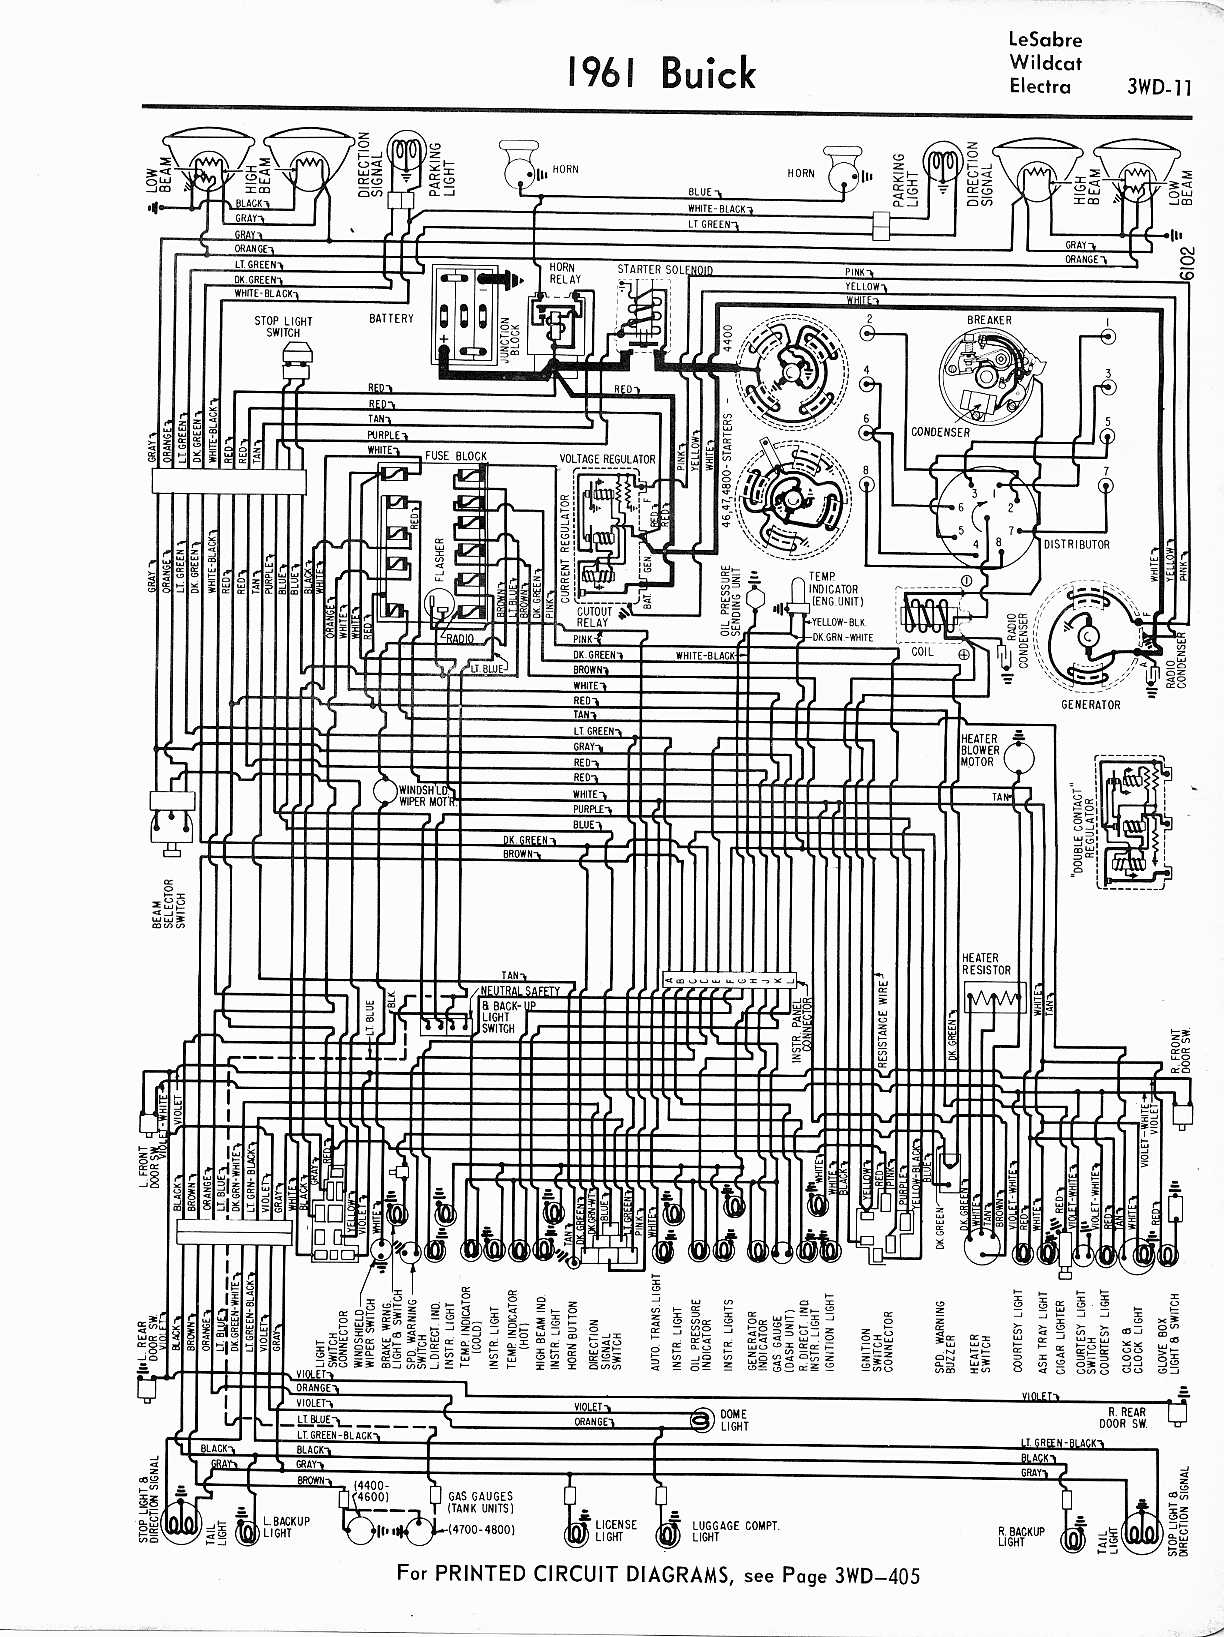 67 Buick Wiring Diagram Libraries 1967 Dodge Coronet Neutral Safety Switch Lesabre Diagrams Third Level1967 Wildcat